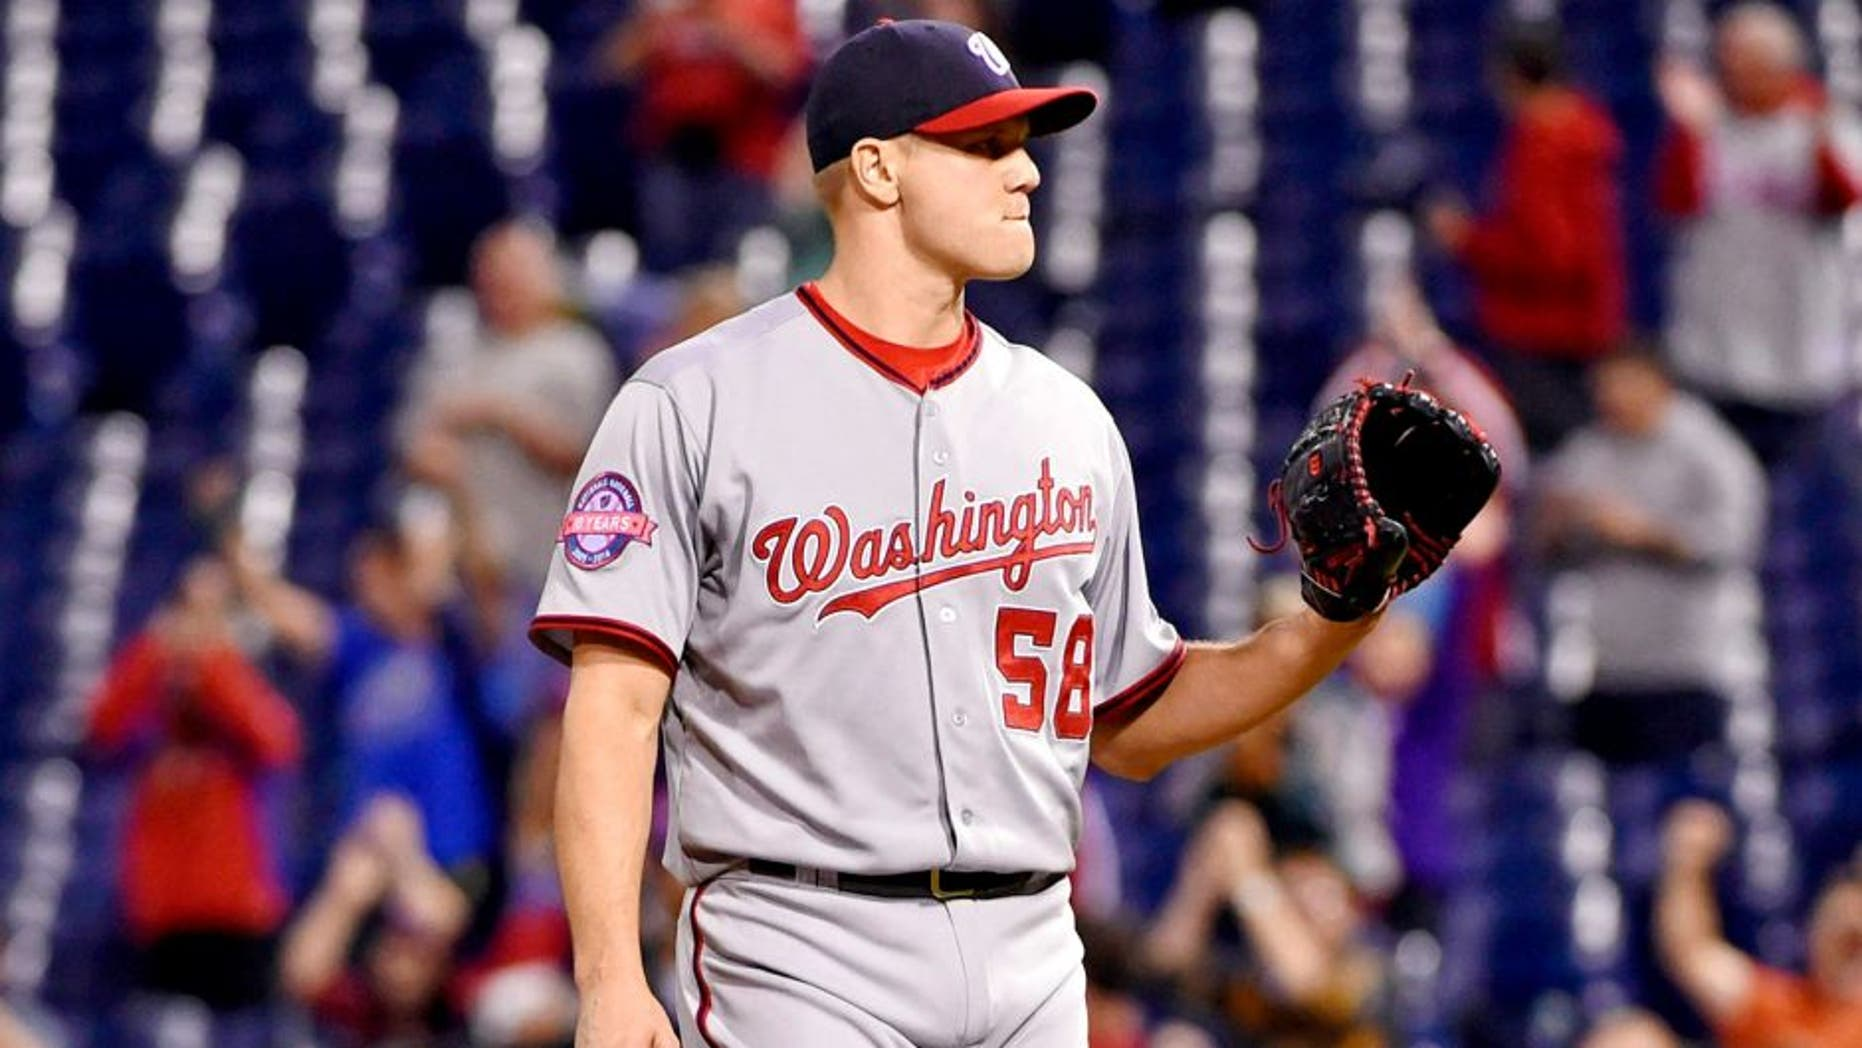 Sep 14, 2015; Philadelphia, PA, USA; Washington Nationals relief pitcher Jonathan Papelbon (58) waits for a new baseball after allowing a game-tying home run during the tenth inning against the Philadelphia Phillies at Citizens Bank Park. The Nationals defeated the Phillies, 8-7 in 11 innings. Mandatory Credit: Eric Hartline-USA TODAY Sports